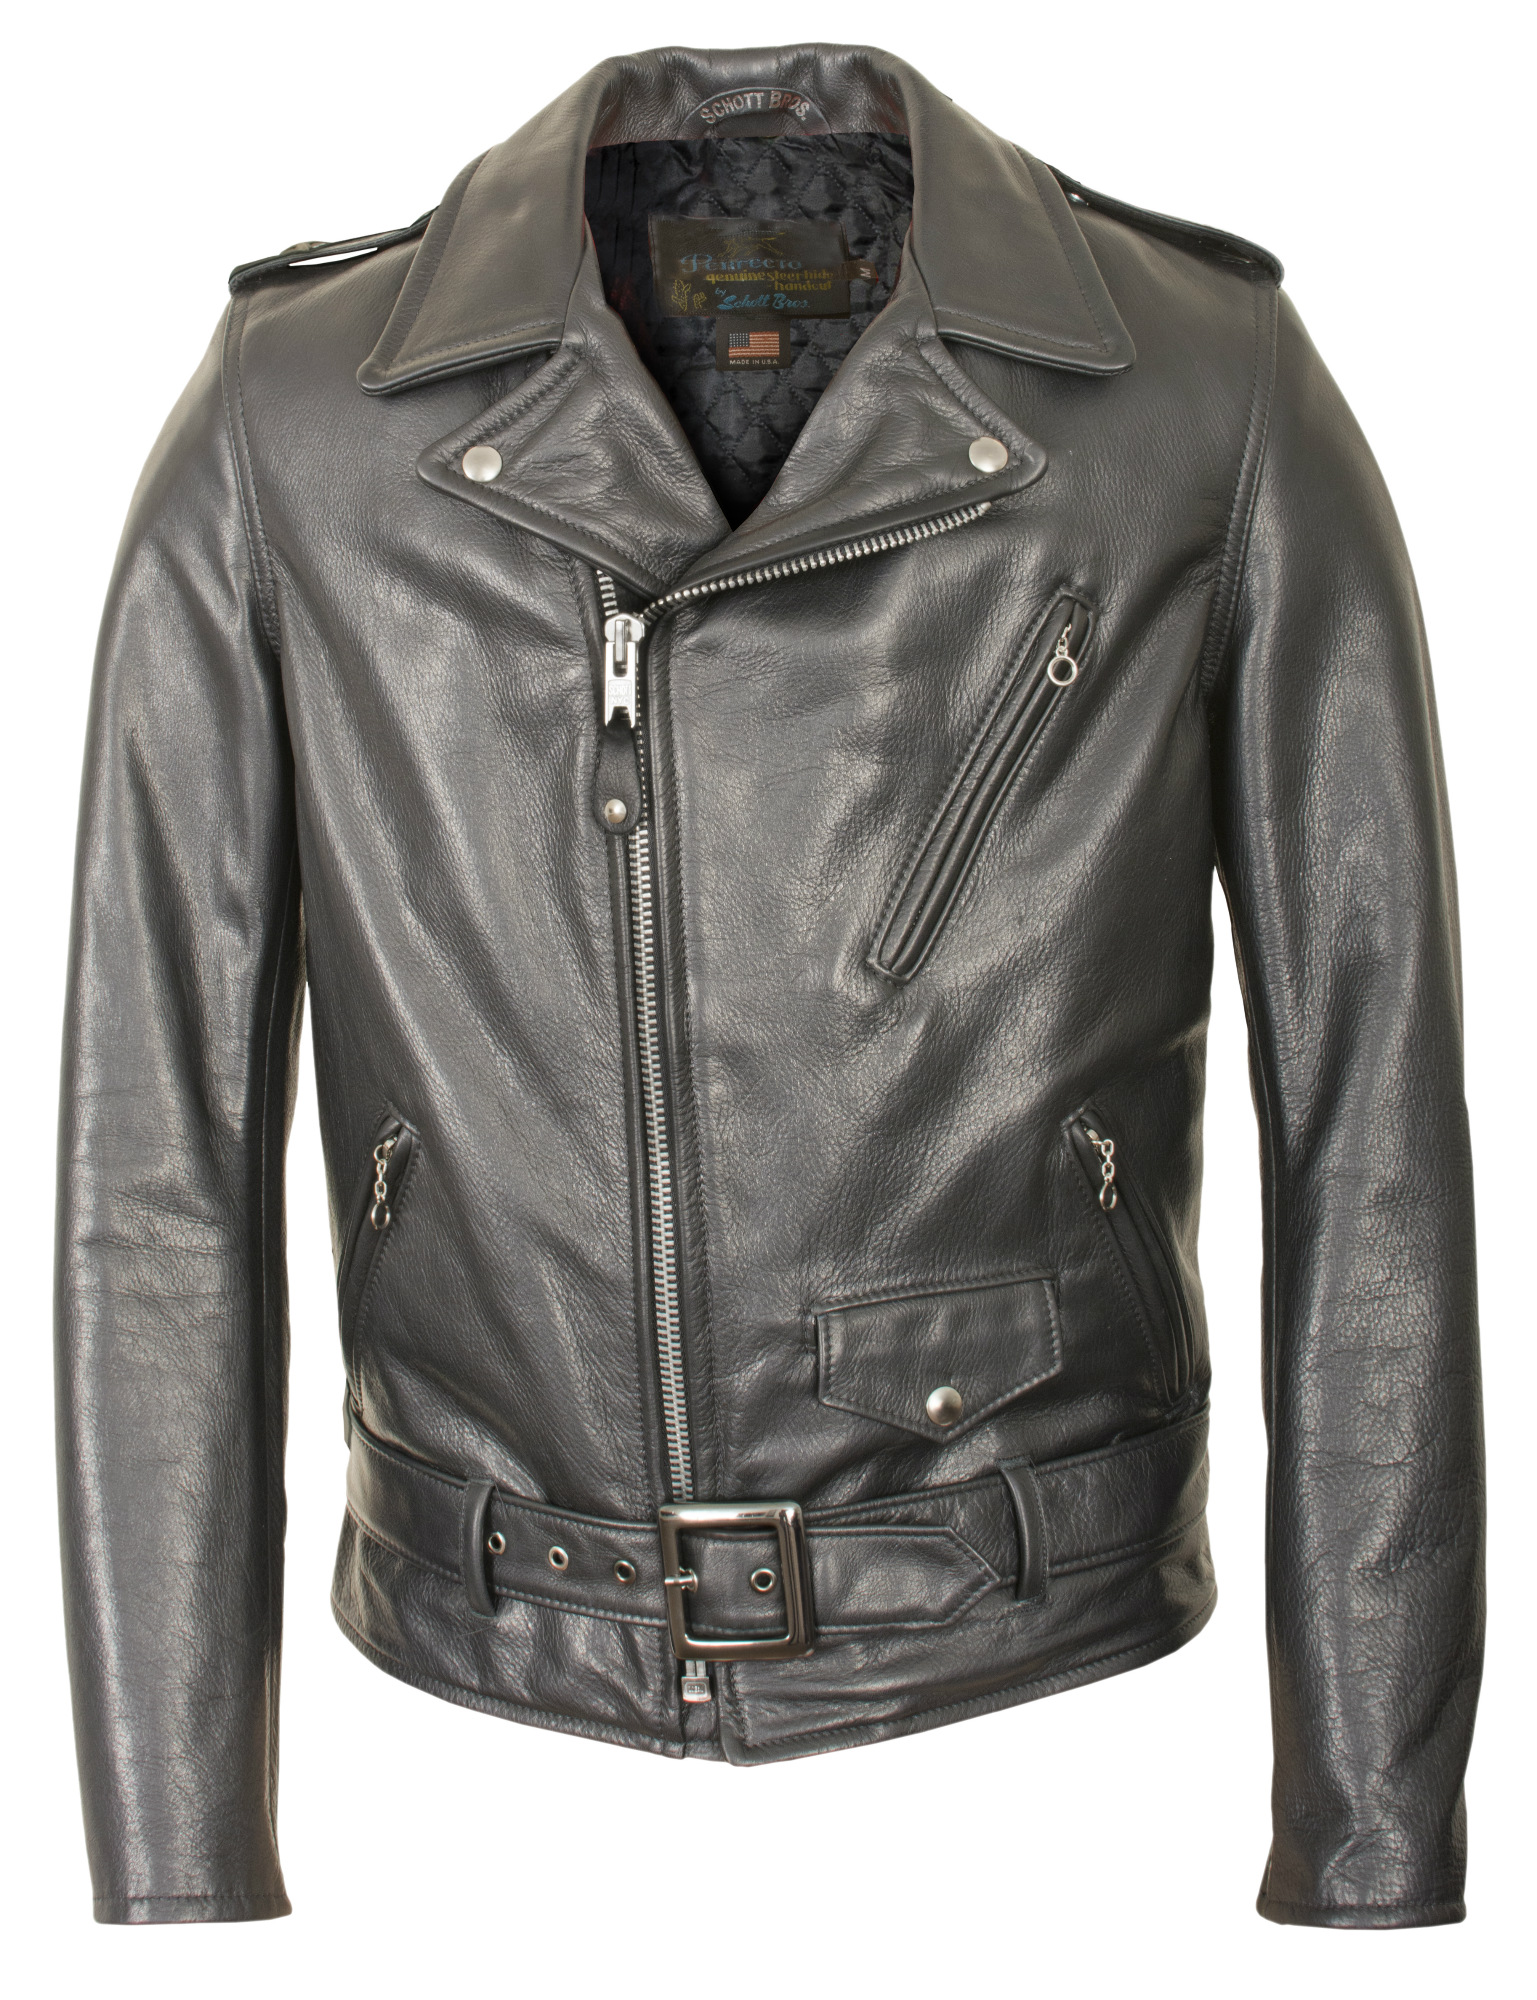 8bee8659e Schott N.Y.C. 519 Waxy Natural Cowhide 50's Perfecto® Motorcycle Leather  Jacket - Black Size XS